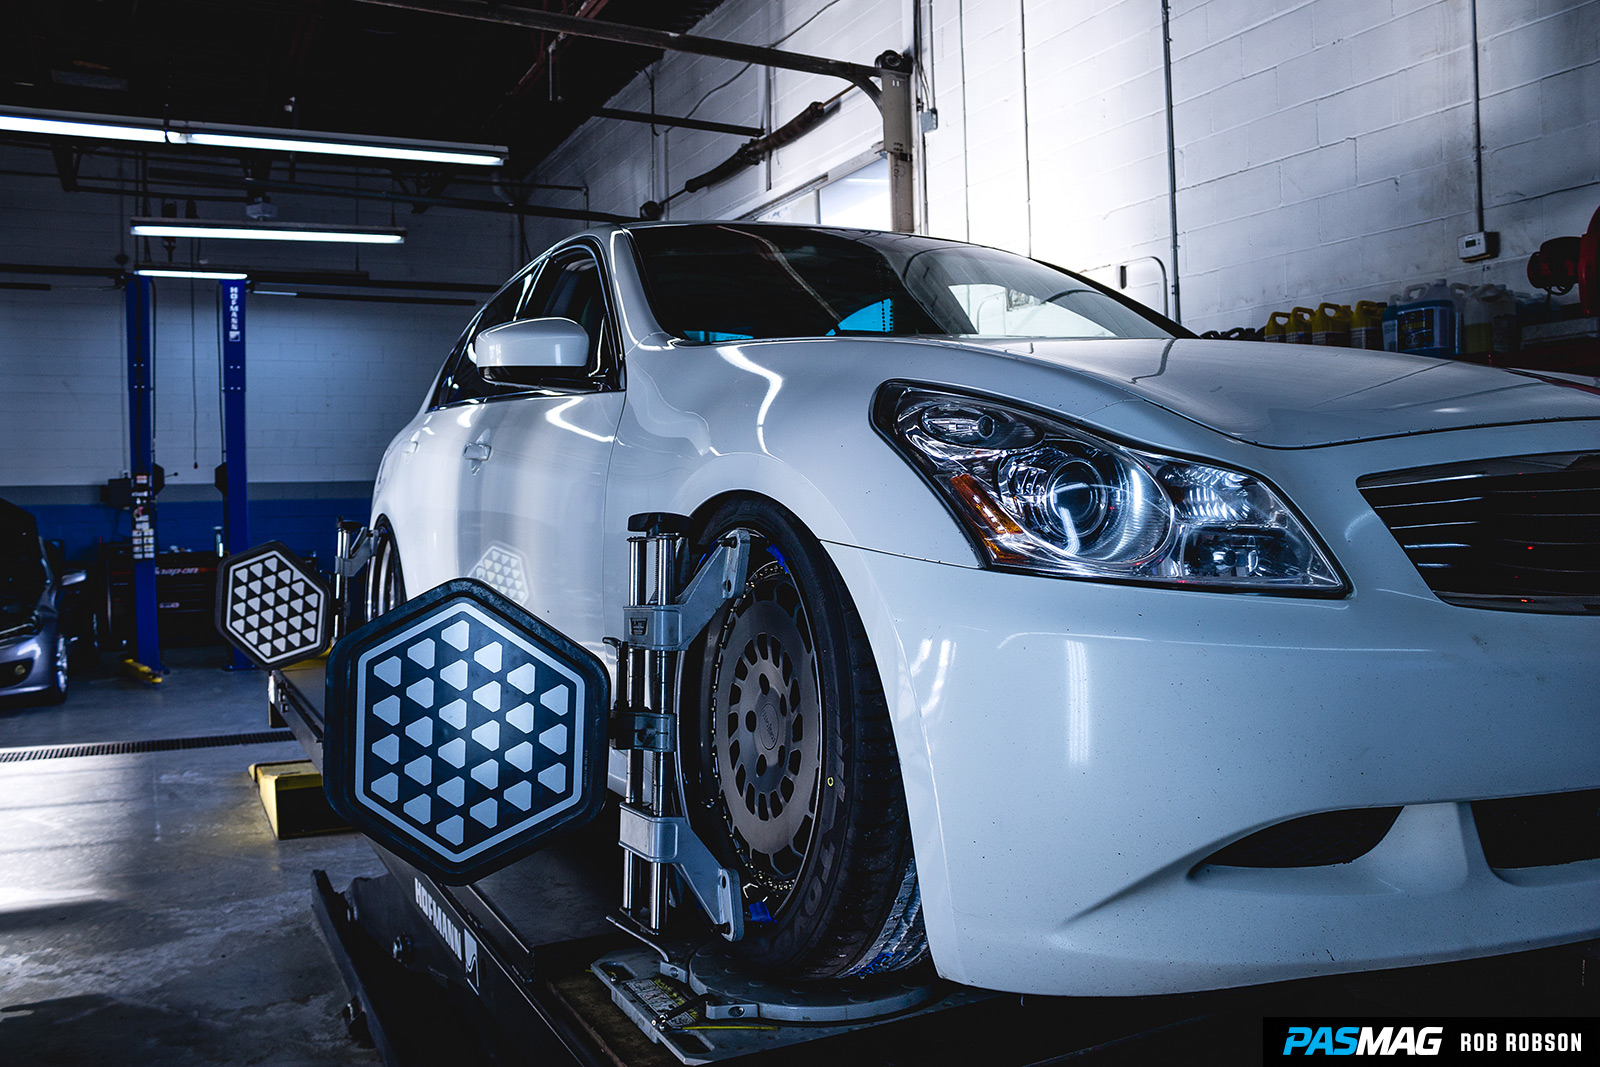 Fitted 101 Infiniti G37xS PASMAG Rob Robson 43